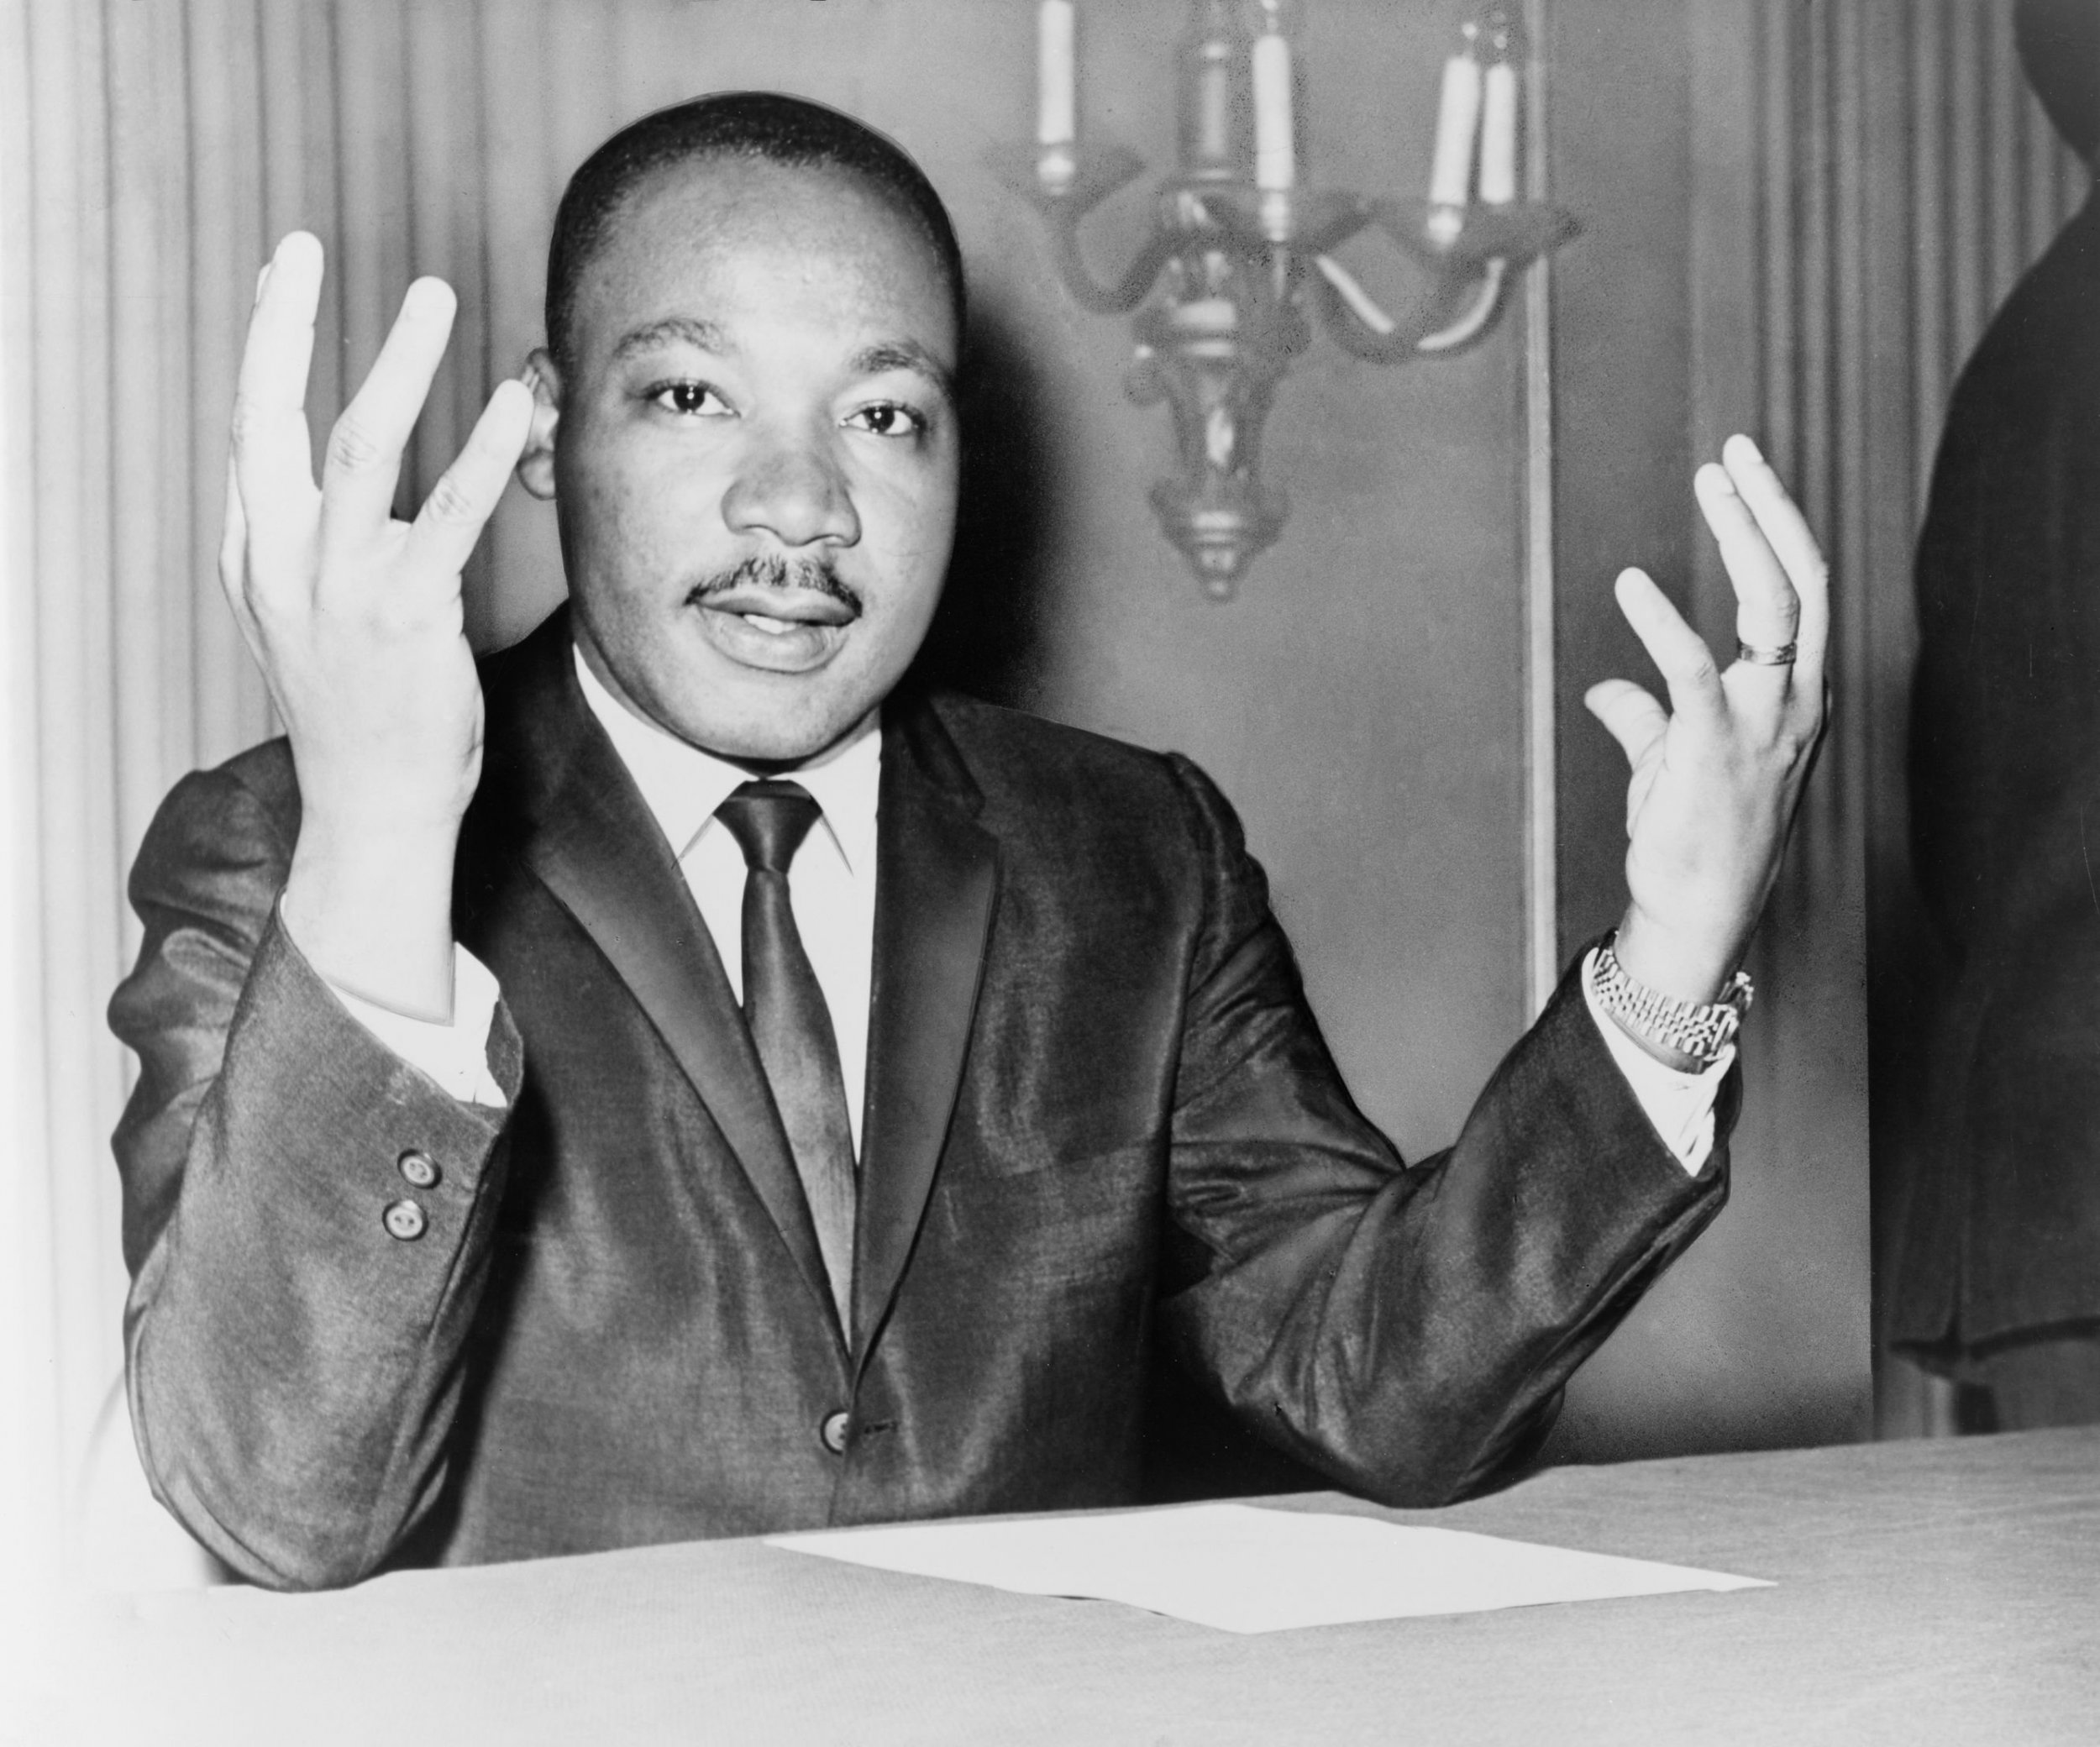 Martin_Luther_King_Jr_NYWTS_6